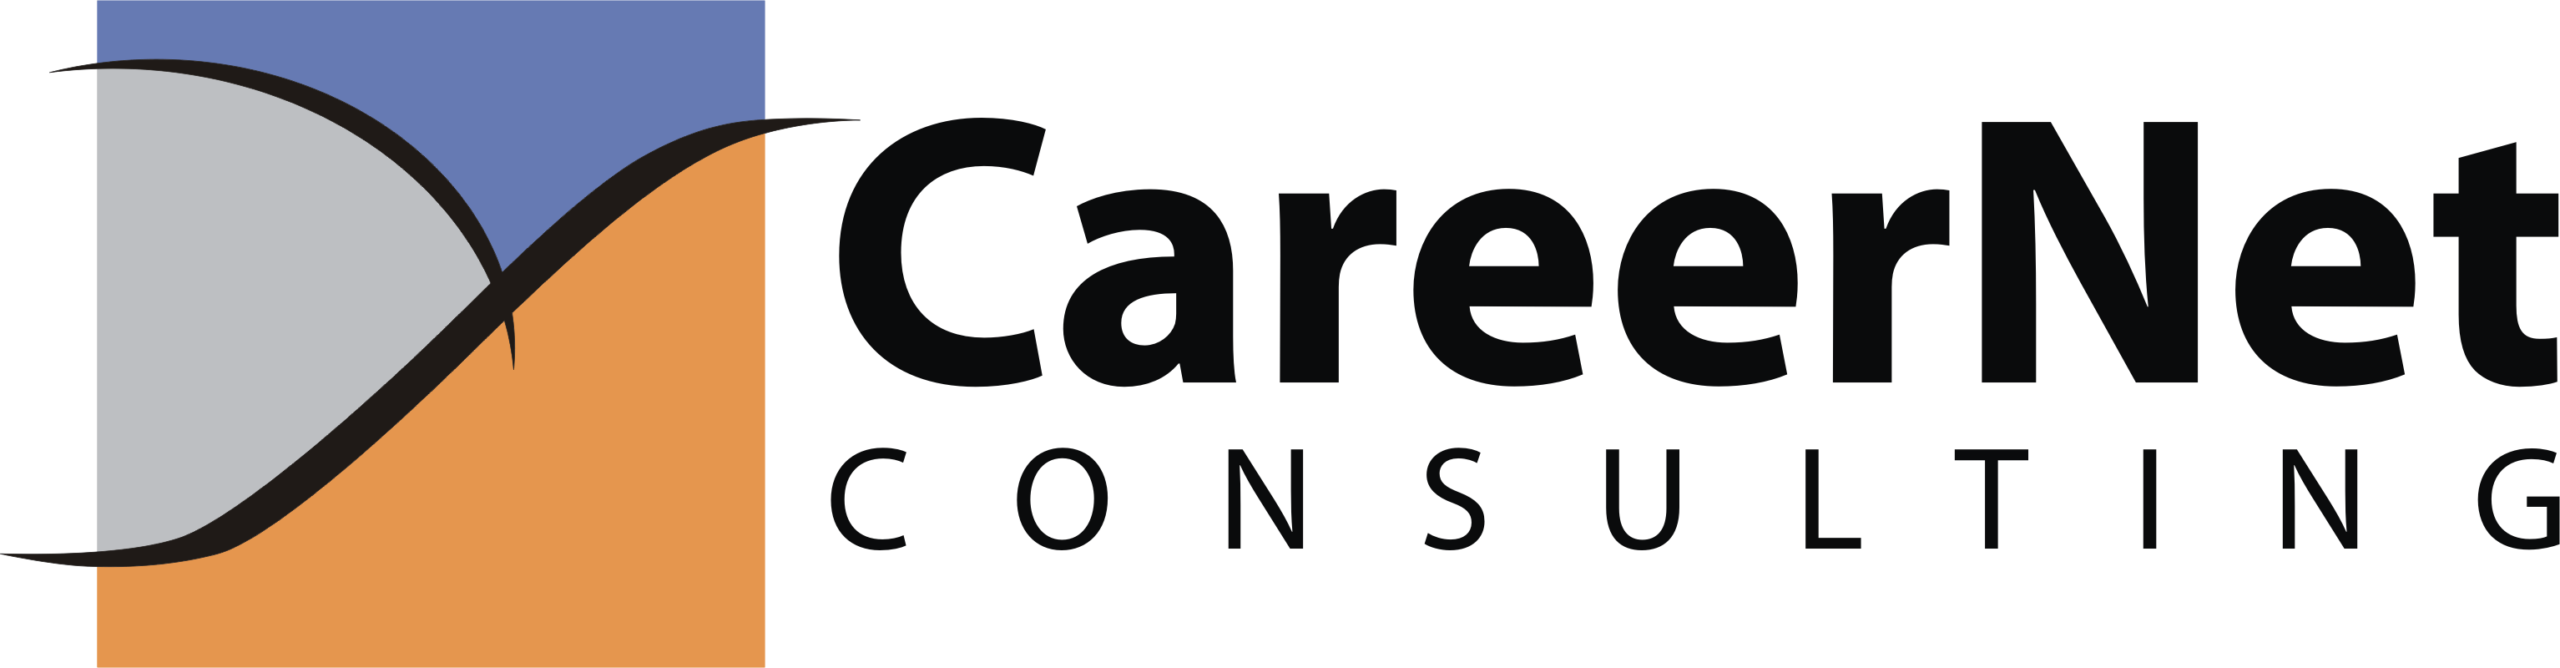 Careernet Technologies